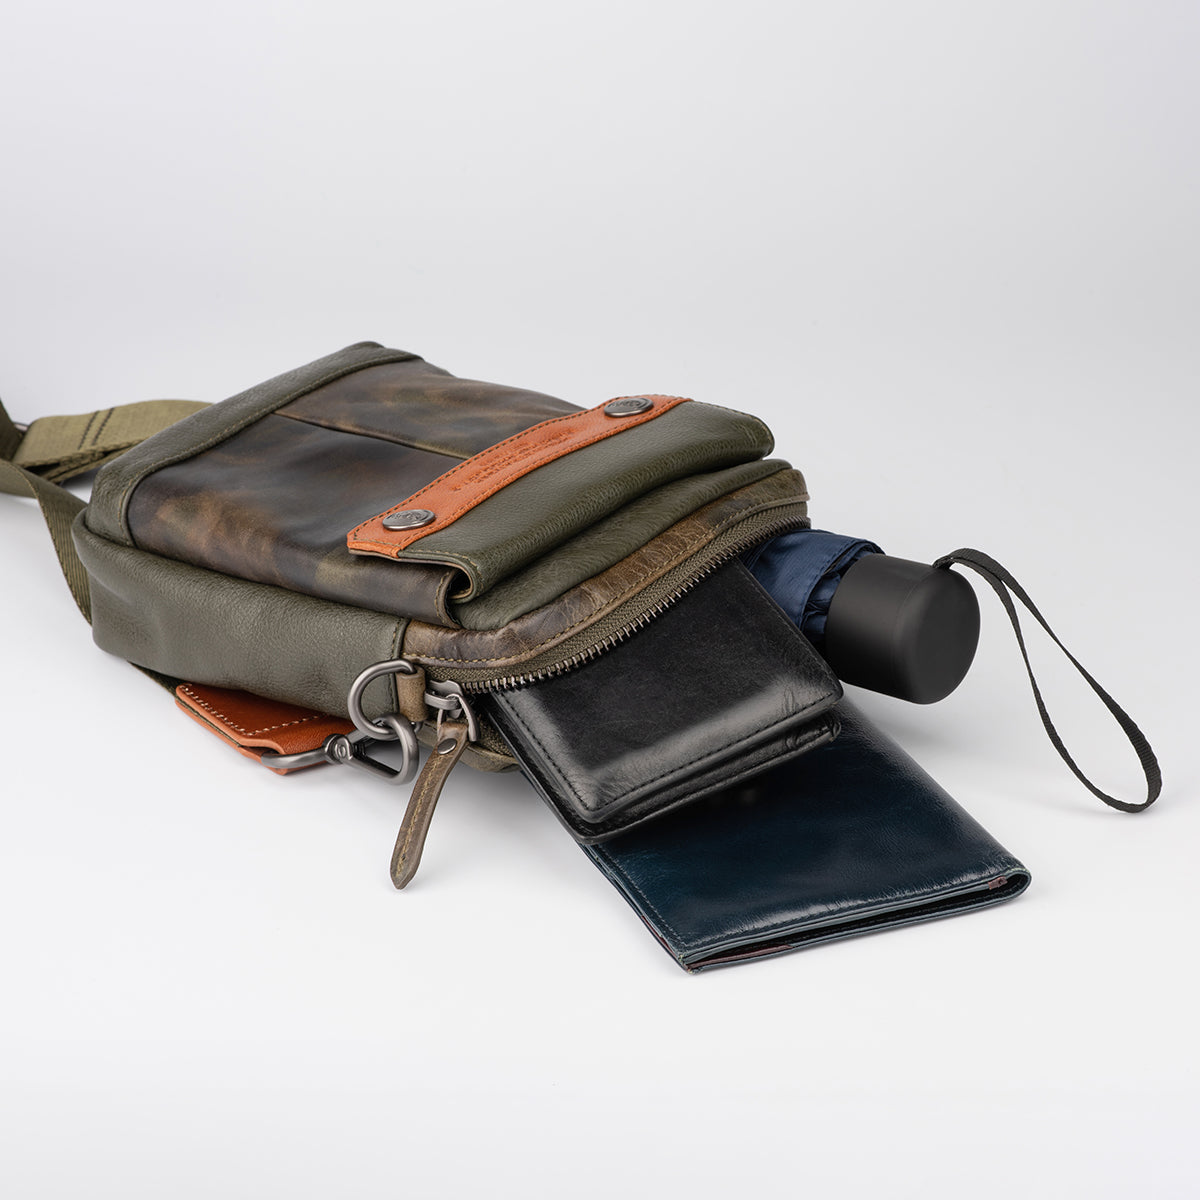 Leather Multi-Purpose Pouch with Strap